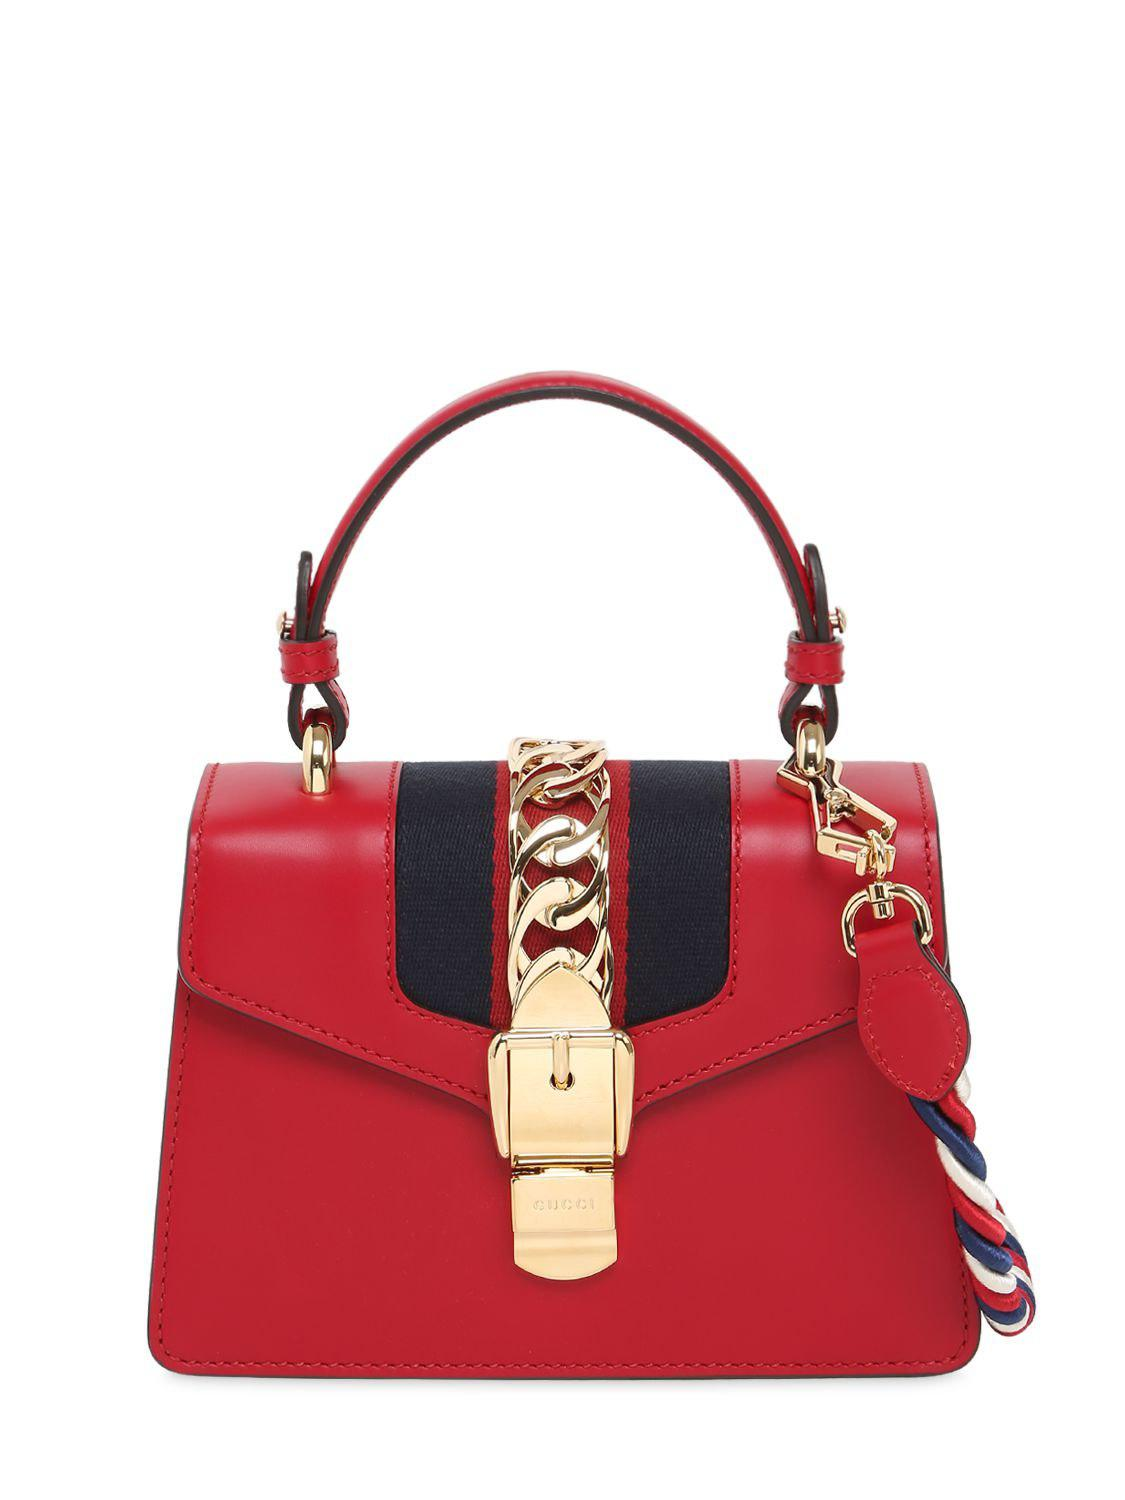 d1e5d1e6c25 Gucci Mini Sylvie Leather Shoulder Bag in Red - Save 15% - Lyst